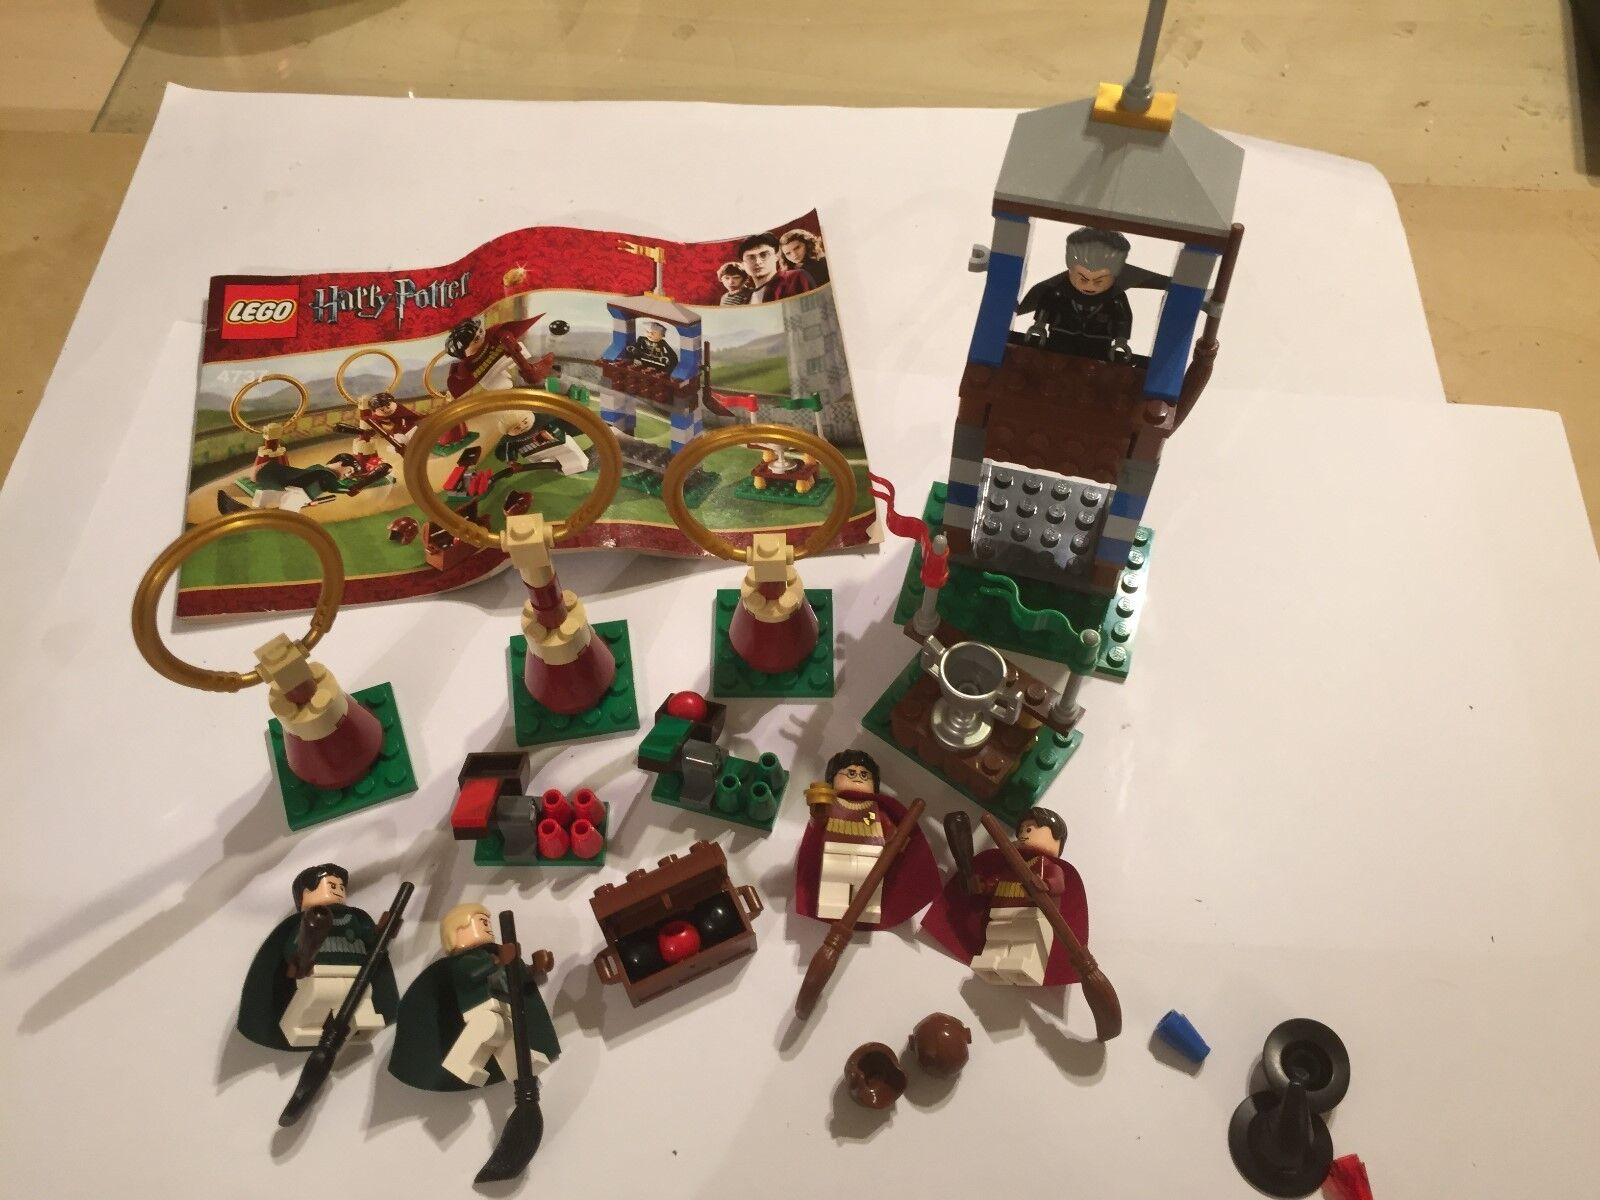 LEGO HARRY POTTER Quidditch PLAY SET Inc MINIFIGURES INSTRUCTIONS & EXTRA 4737